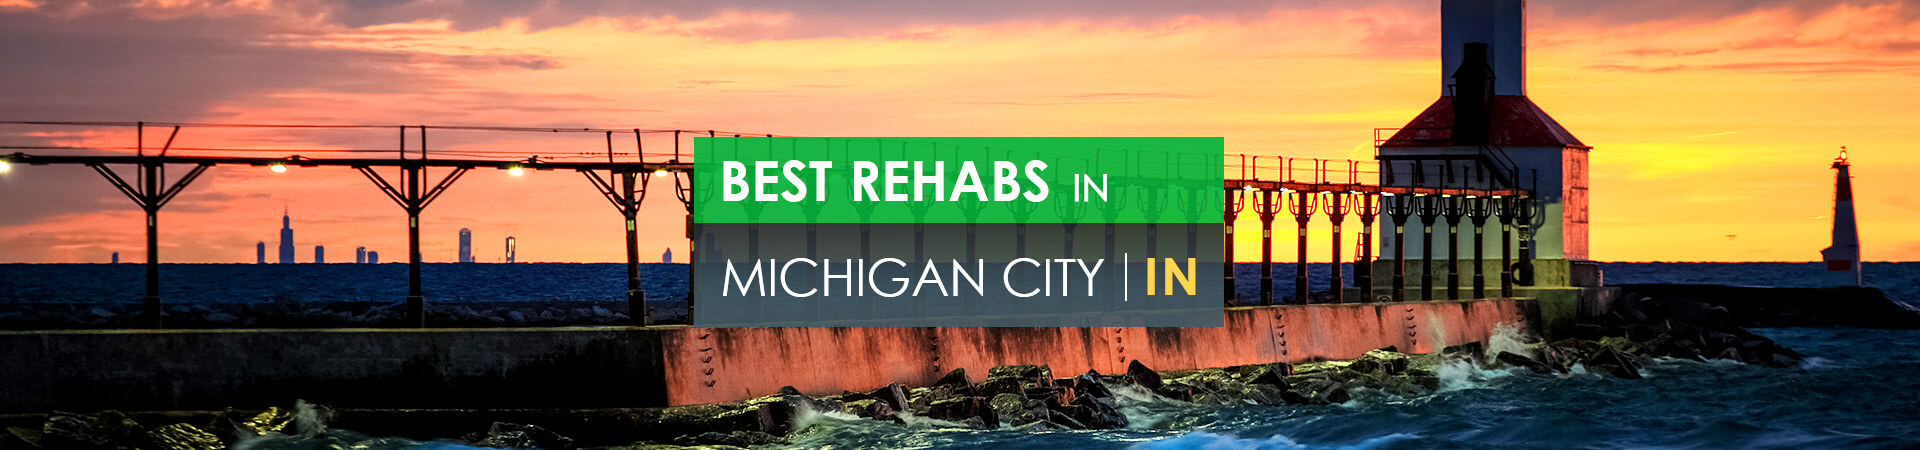 Best rehabs in Michigan City, IN